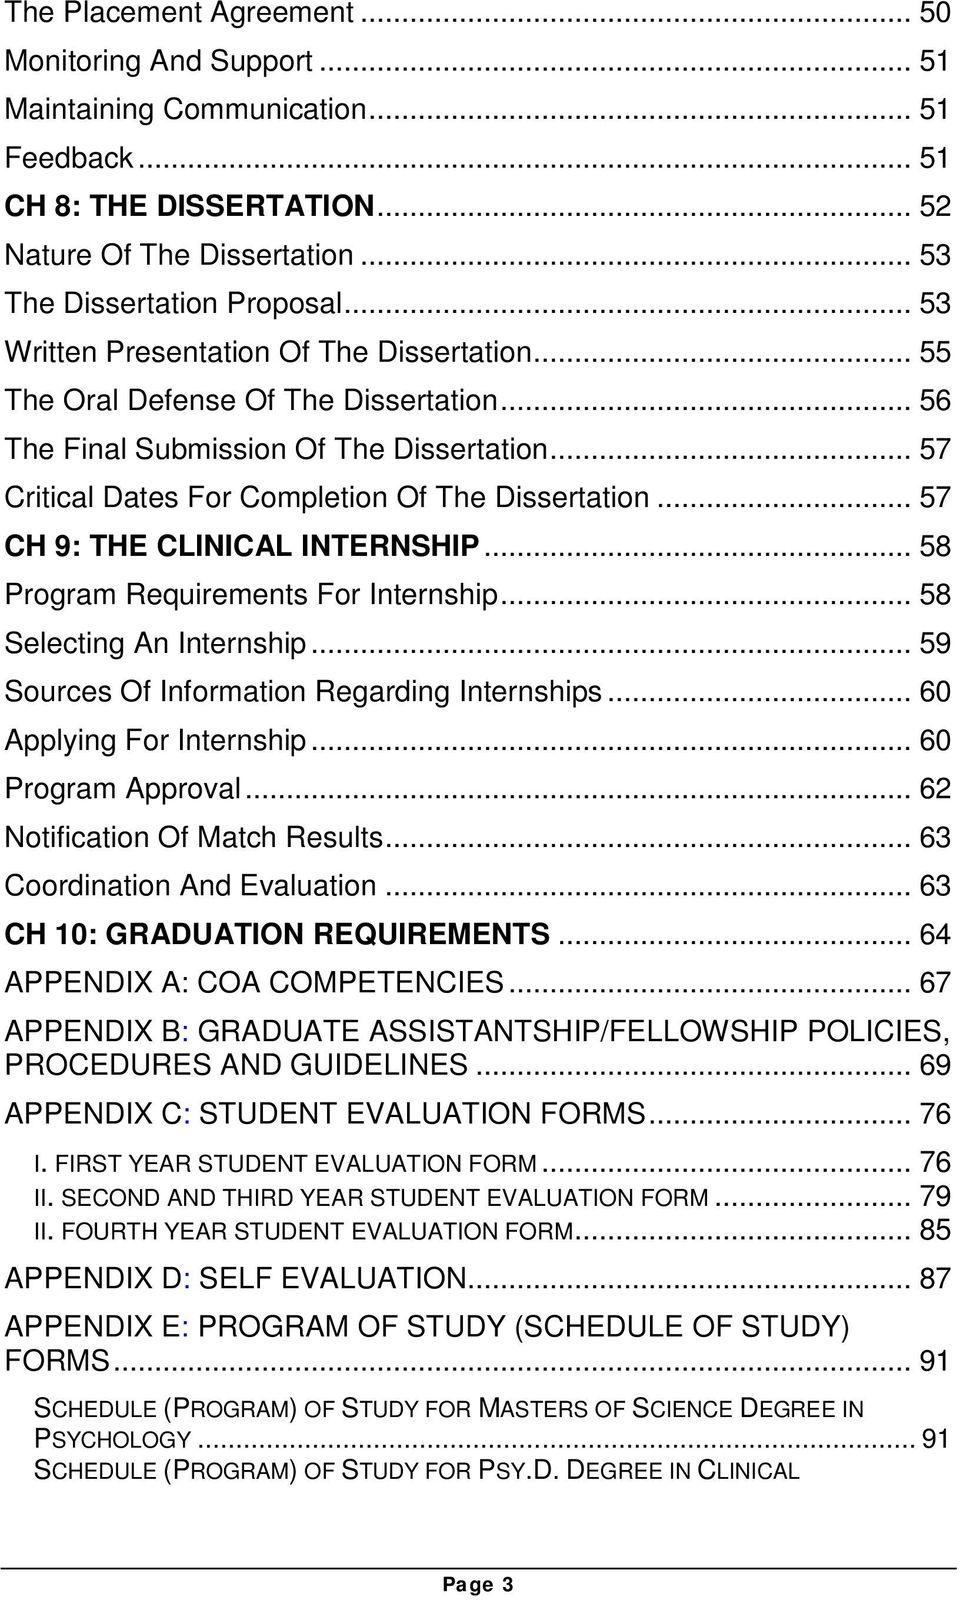 .. 57 CH 9: THE CLINICAL INTERNSHIP... 58 Program Requirements For Internship... 58 Selecting An Internship... 59 Sources Of Information Regarding Internships... 60 Applying For Internship.